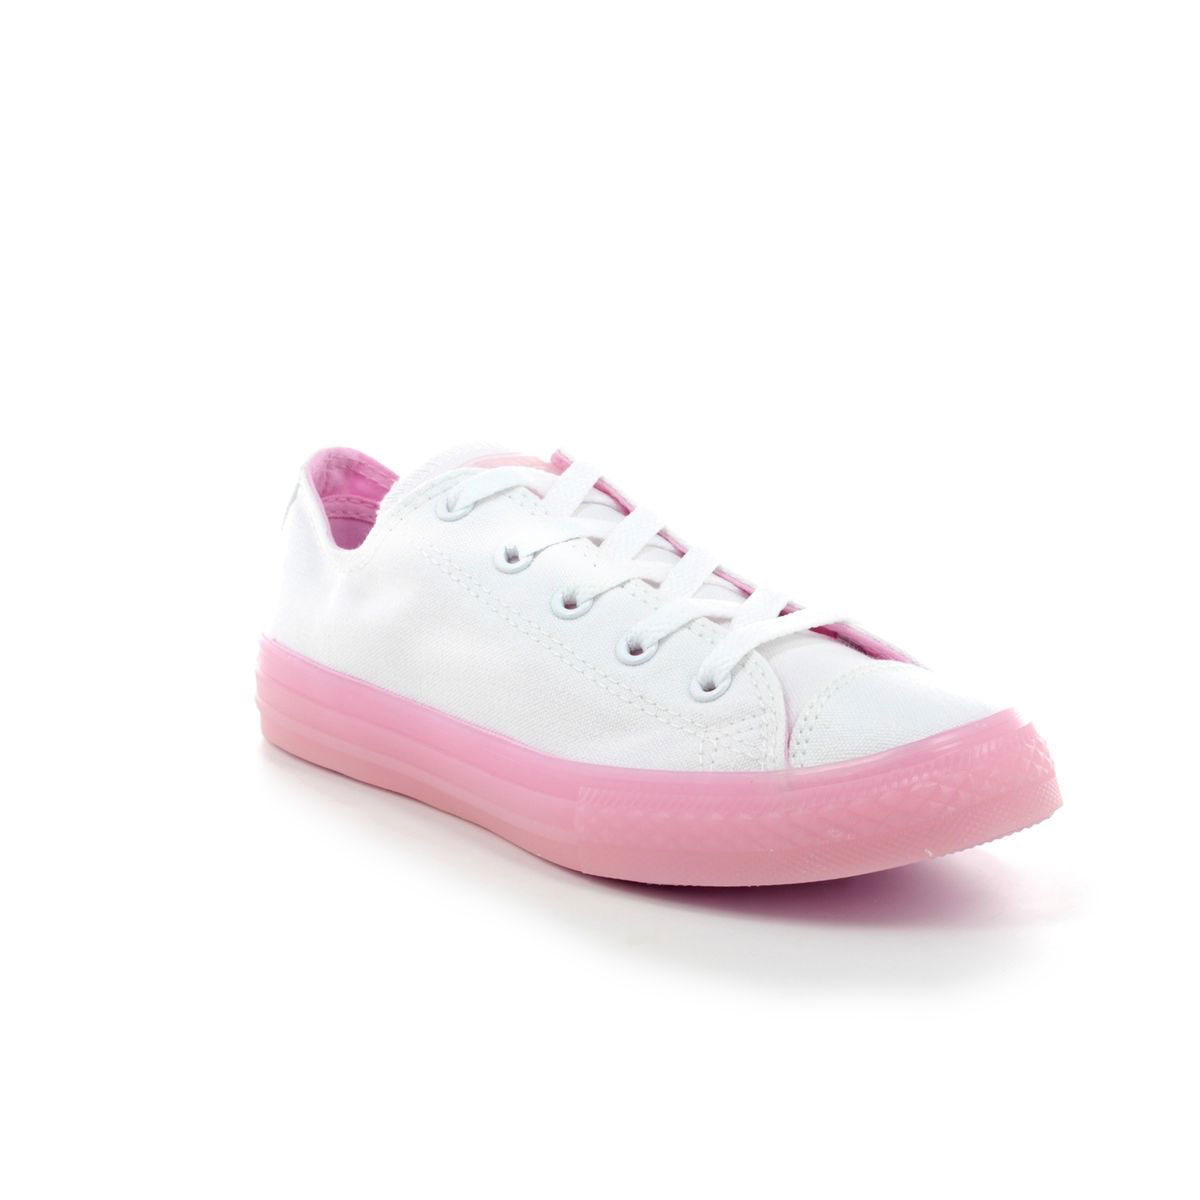 43df7afeb822 Converse Trainers - White-Pink combi - 660719C 100 ALLSTAR OX JNR